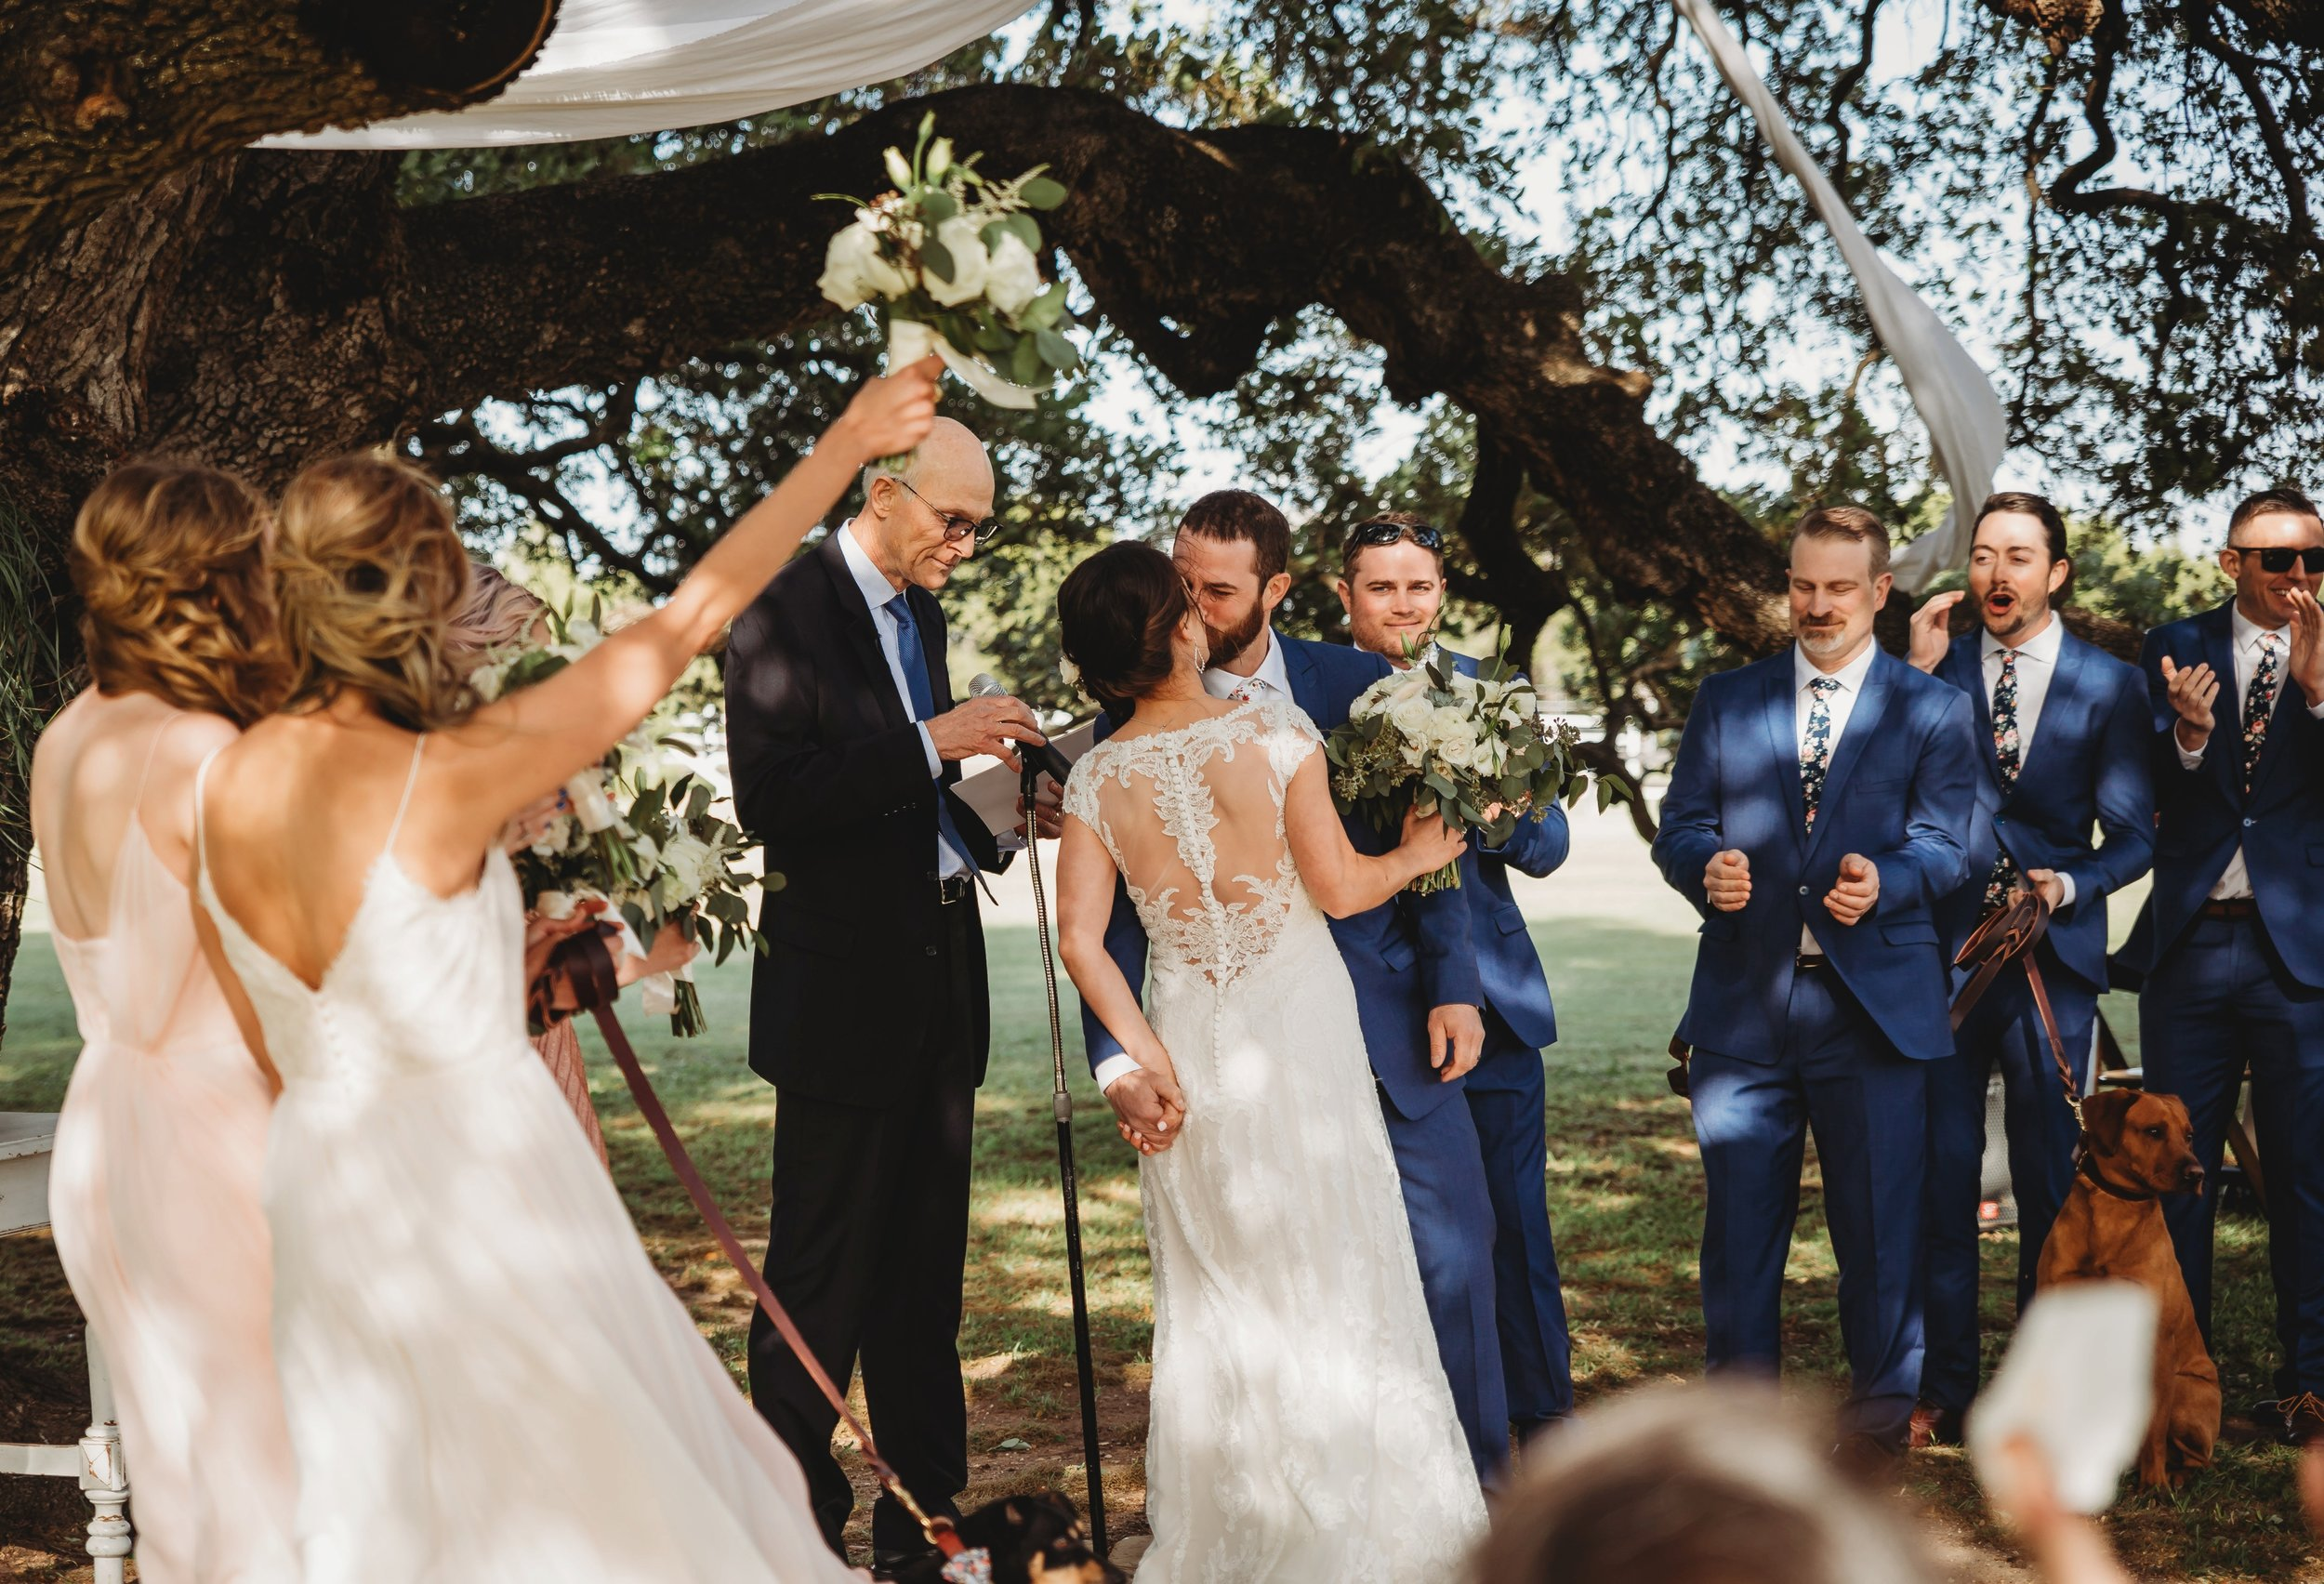 The-White-Fiore-Five-Oaks-Farm-Fort-Worth-Wedding-Planner-Ceremony_011.jpg